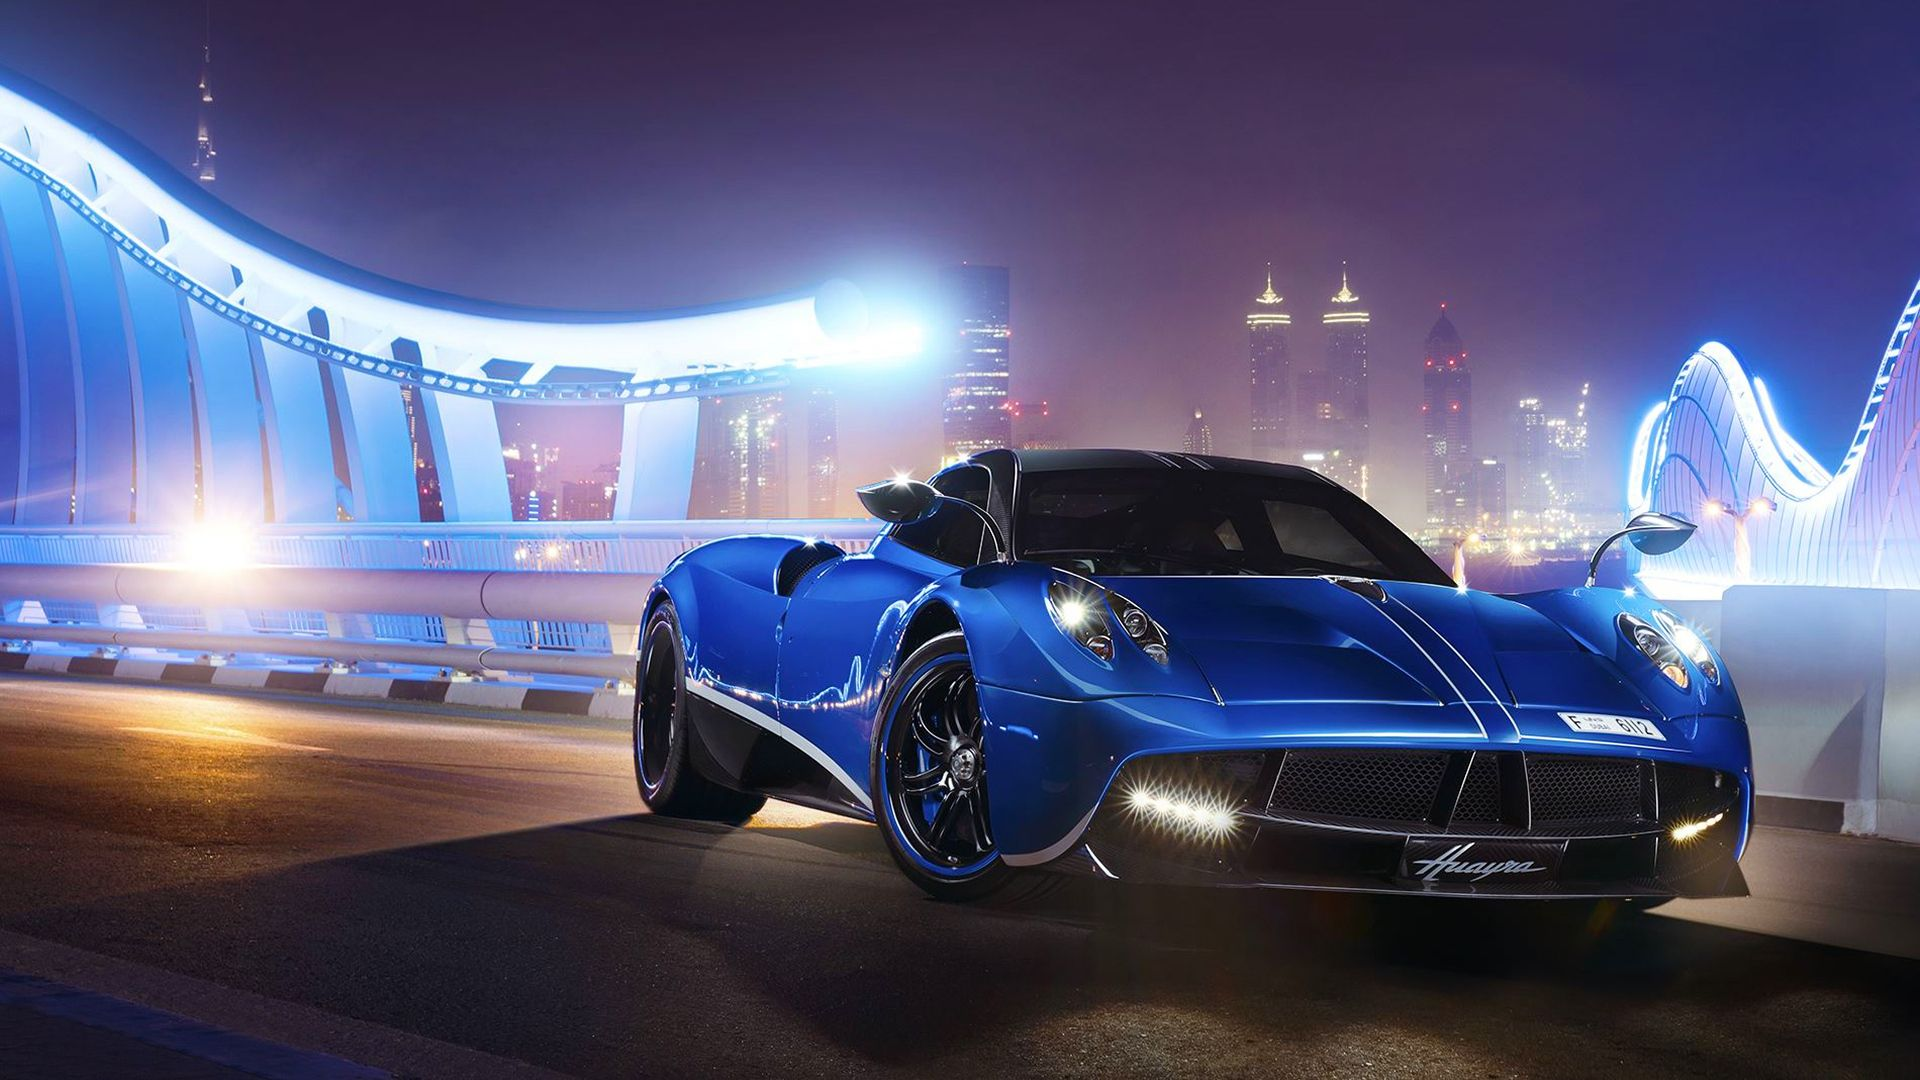 Full Hd Wallpaper Pagani Huayra Dubai Sports Car Highway Luxury